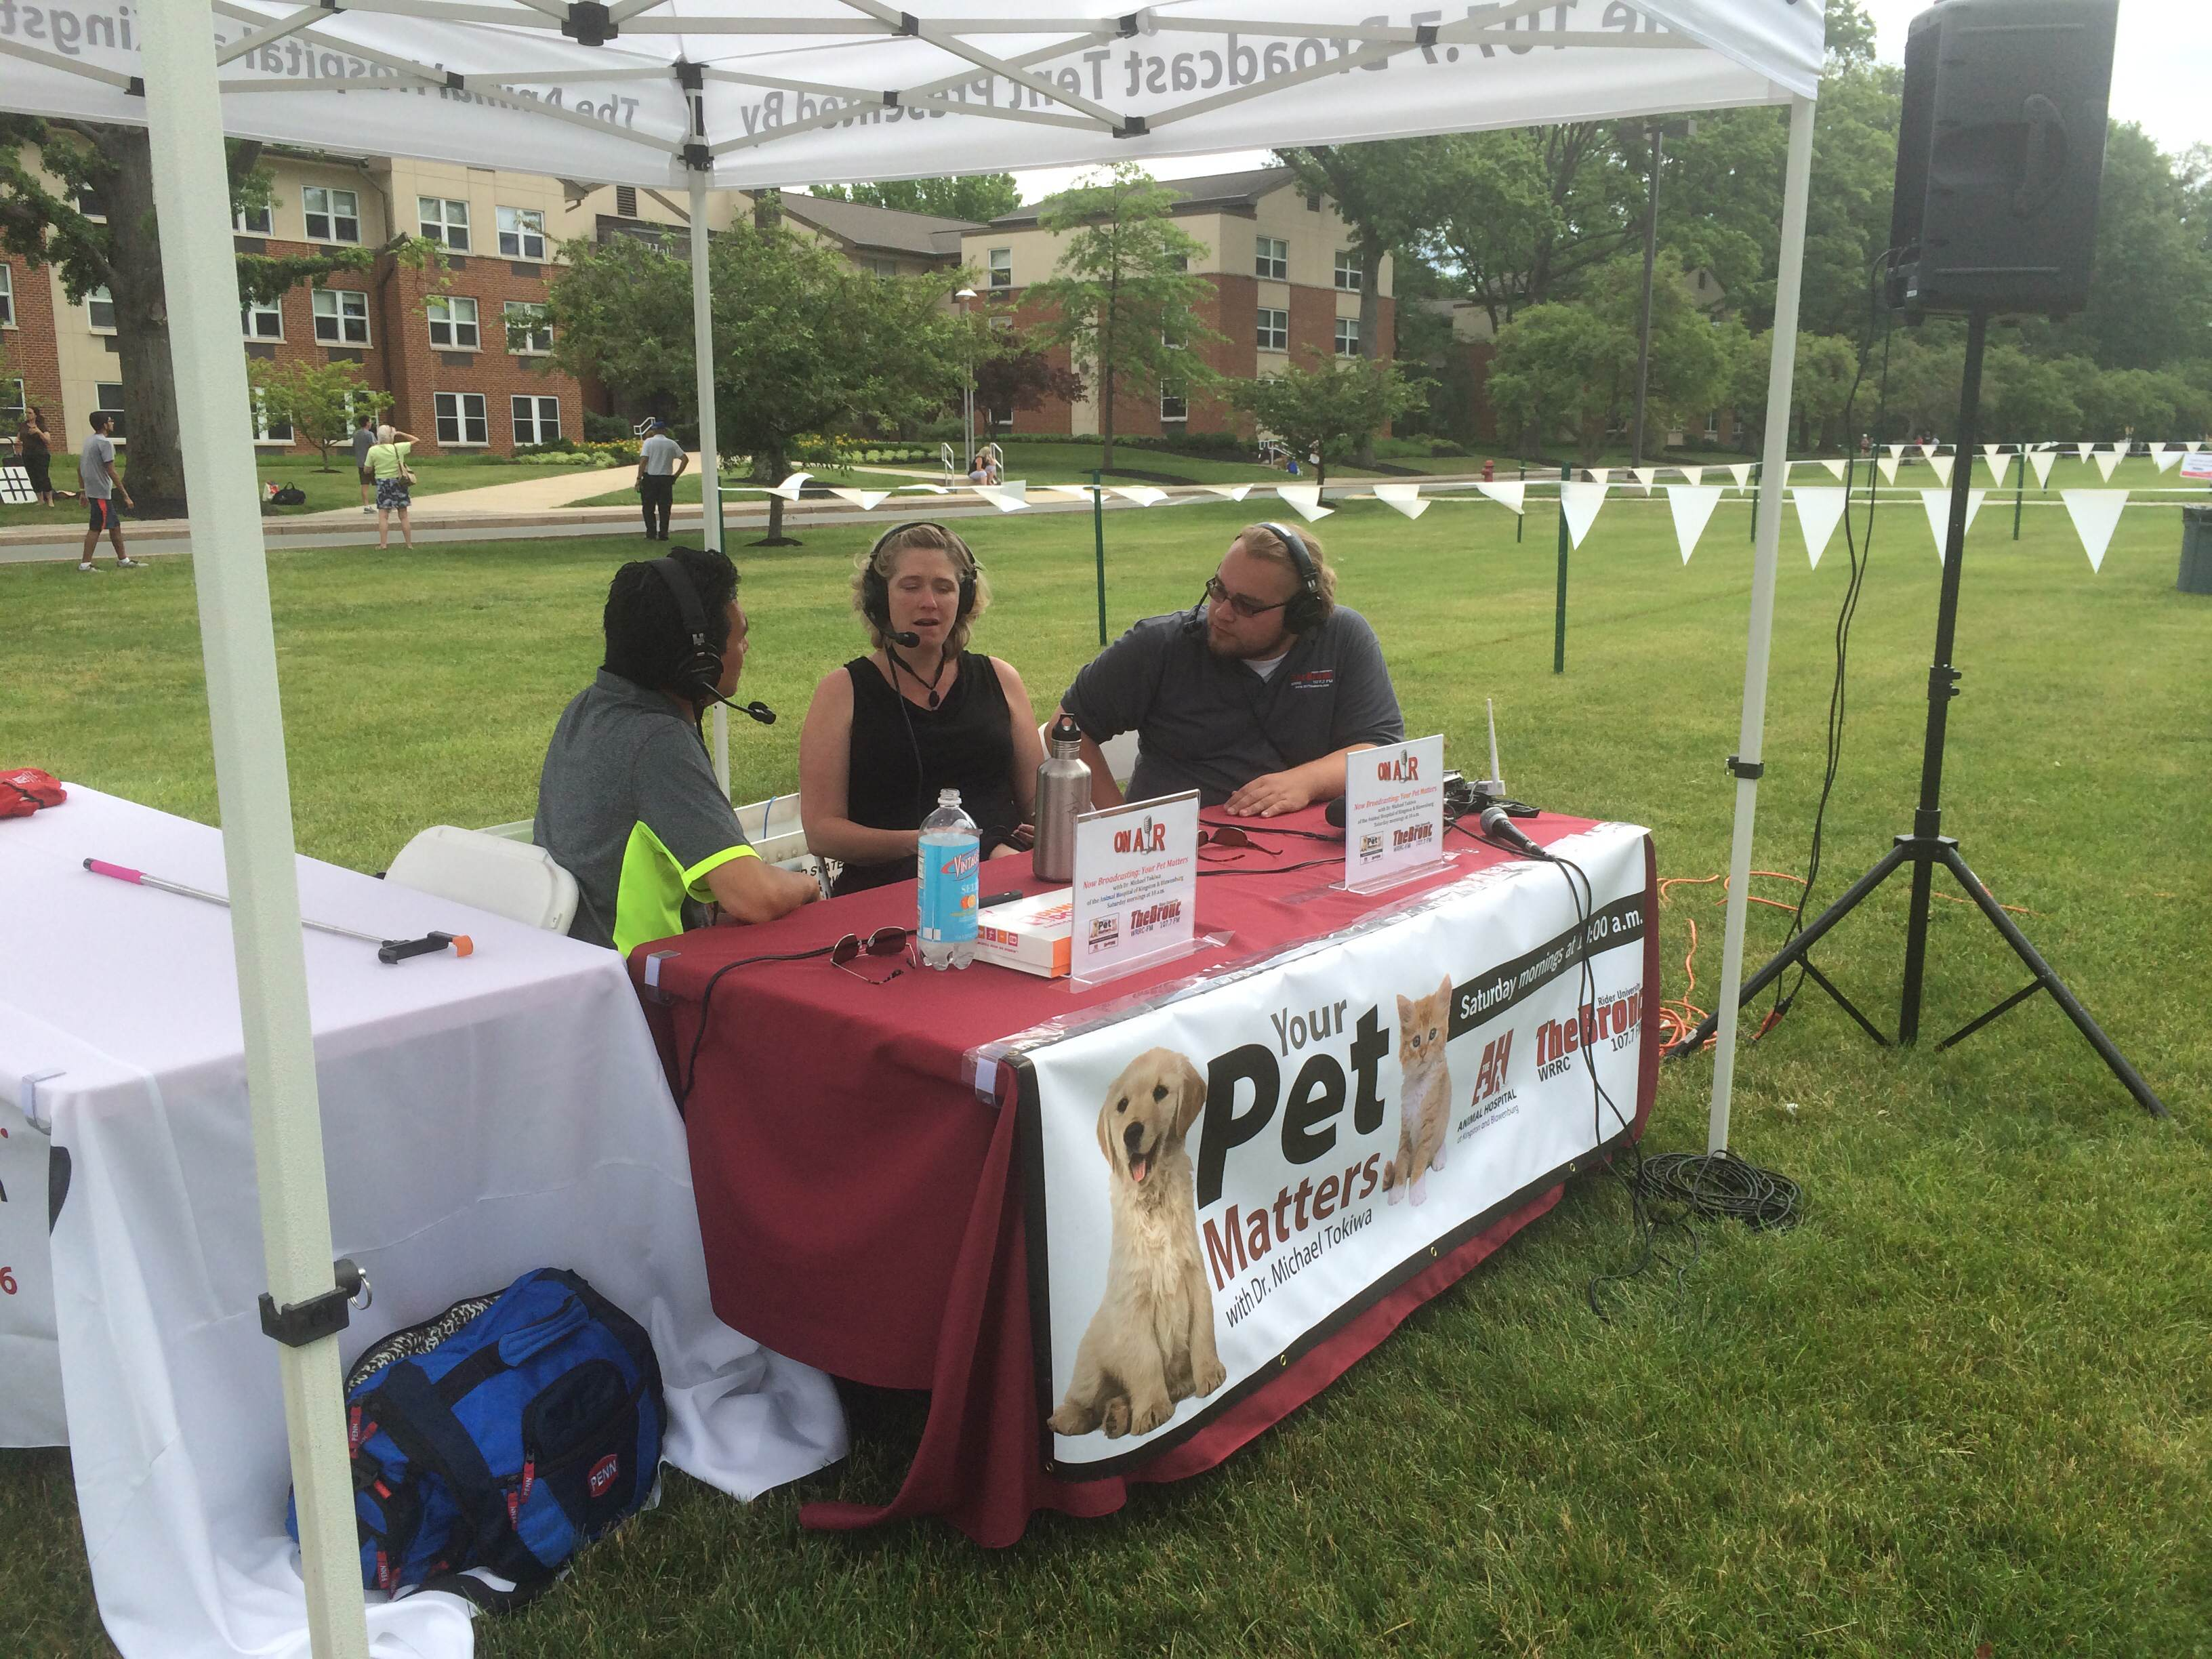 June 13, 2015 – Live at Rider Reunions Day with Heathery Troyer!